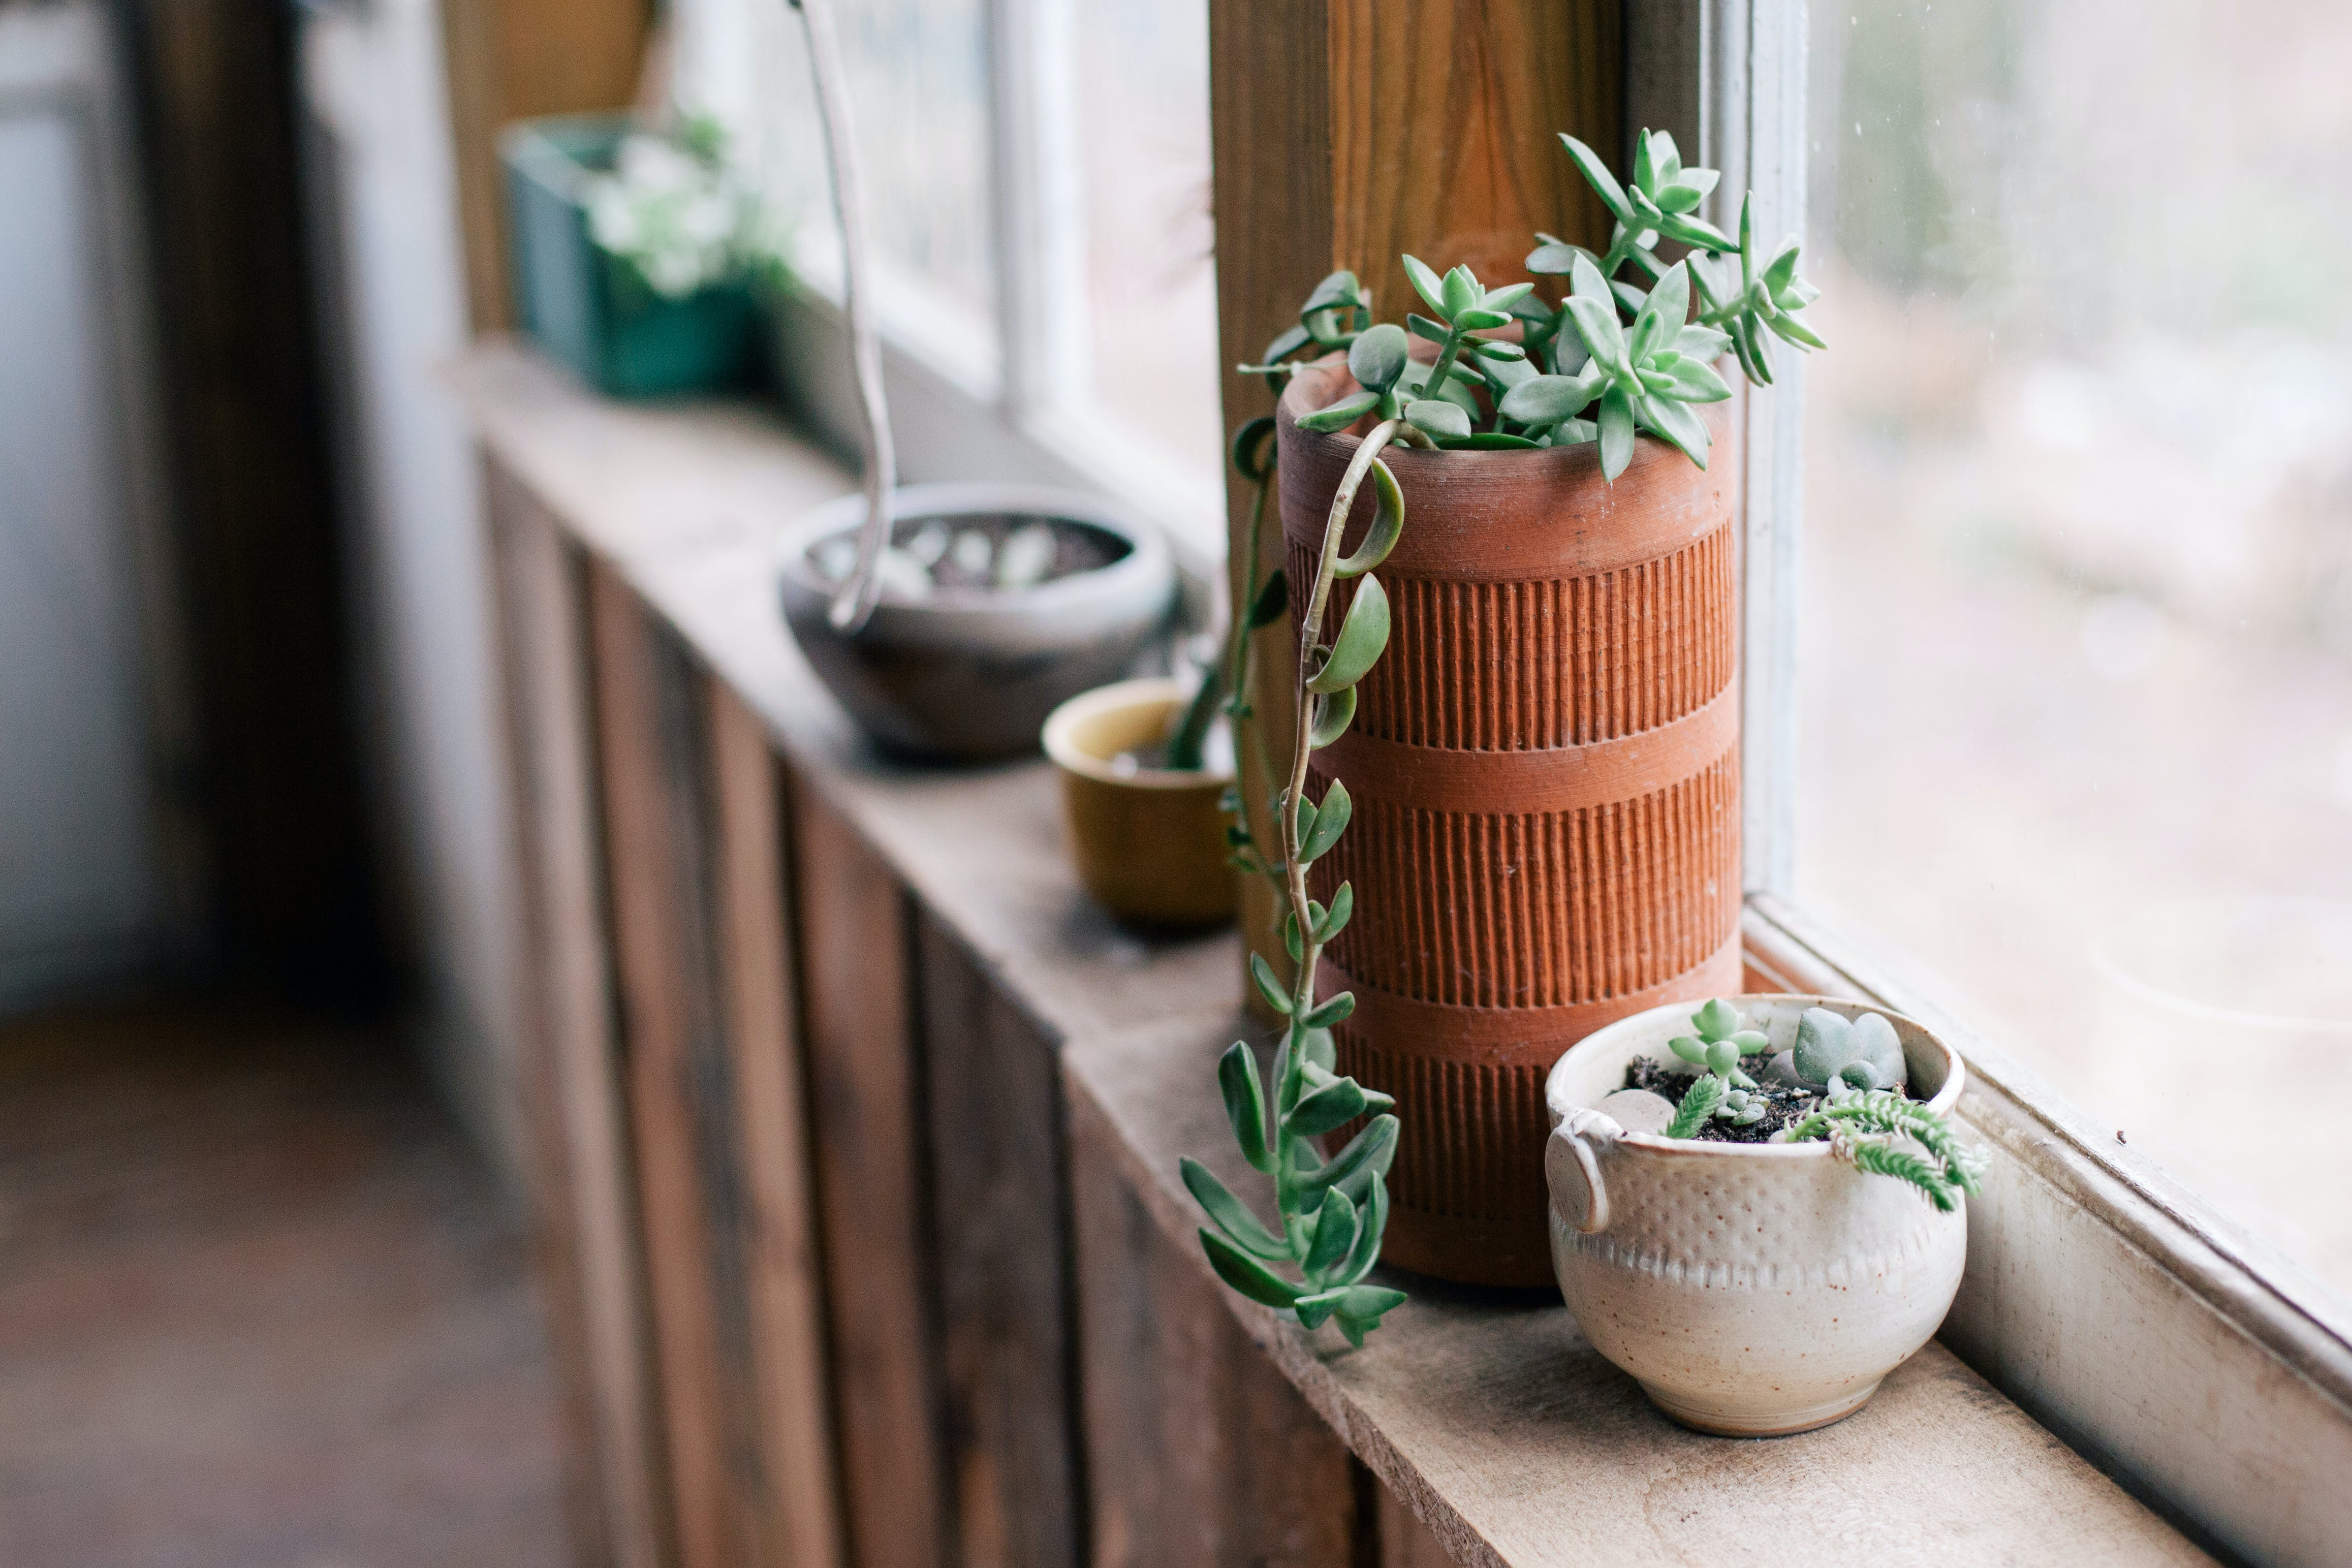 Free stock photo of flowerpots, window-sill